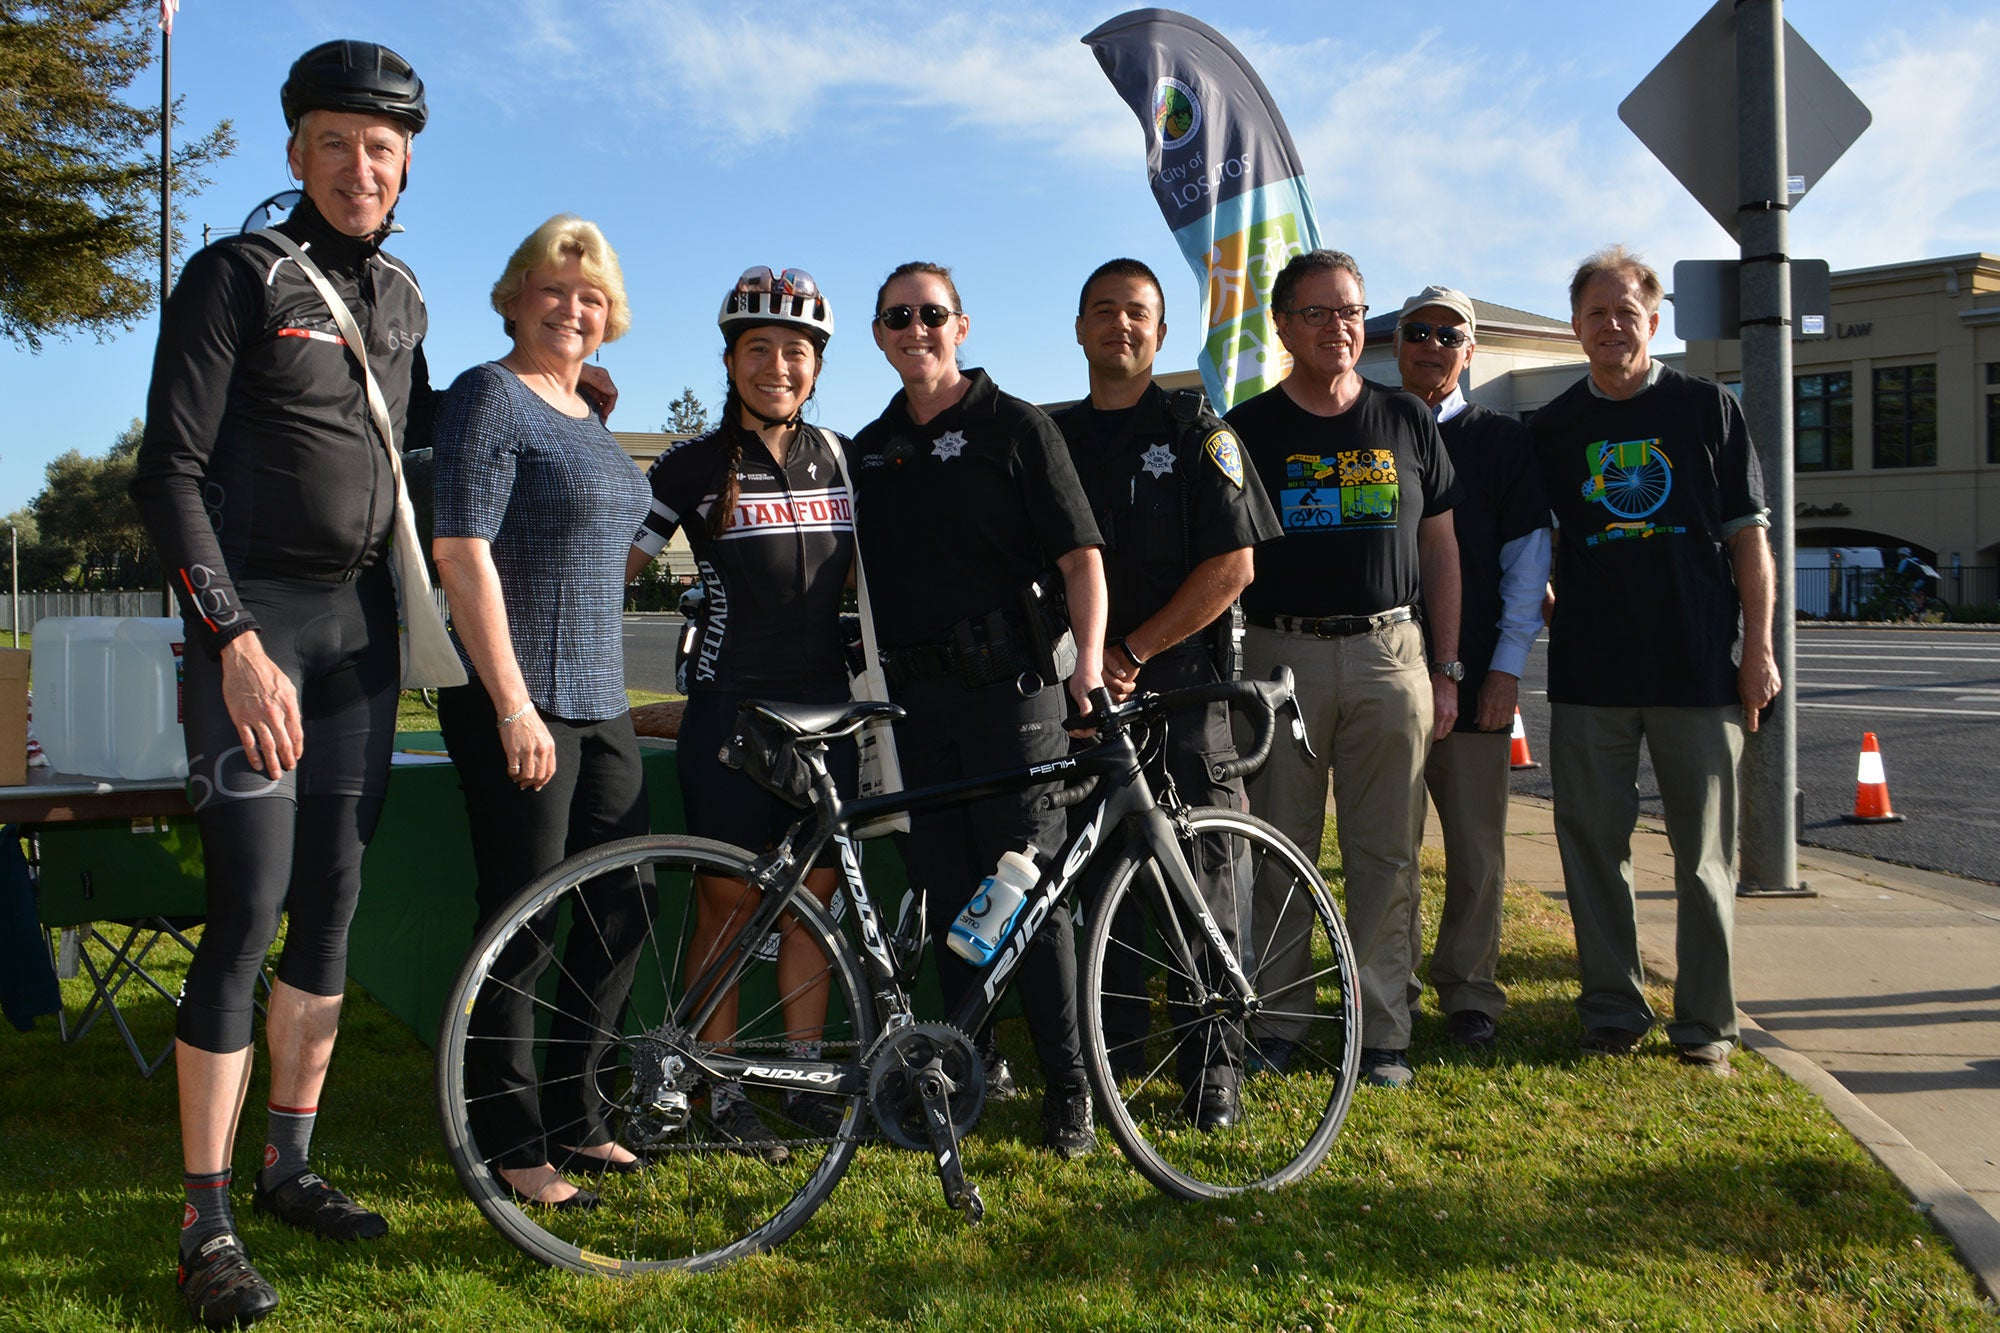 Los Altos Councilmember and MTC Commissioner Jeannie Bruins with members of the City of Los Altos Complete Streets Commission, Los Altos Police Department and Bike to Work Day riders